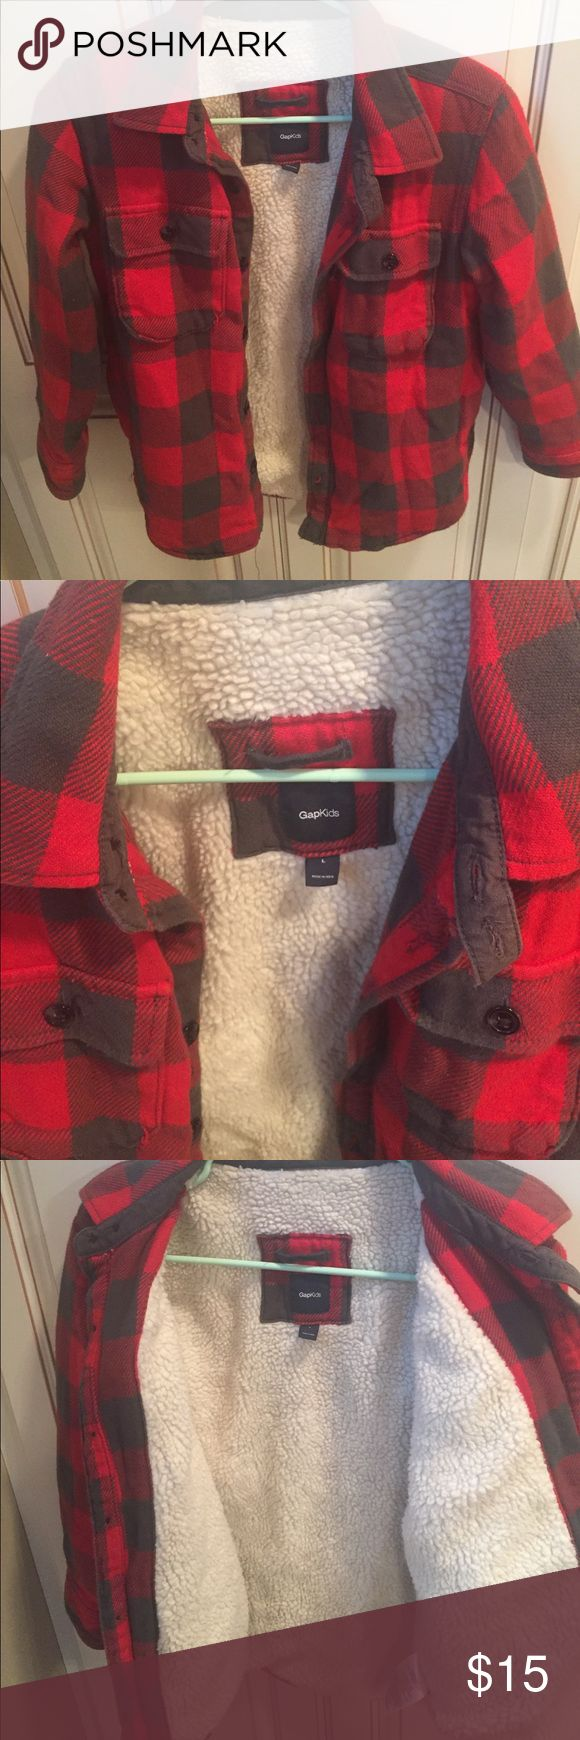 Gap kids boys jacket Gap Kids boys size Large 10-12 fleece lined flannel coat. Red and gray with cream colored fleece. GAP Jackets & Coats